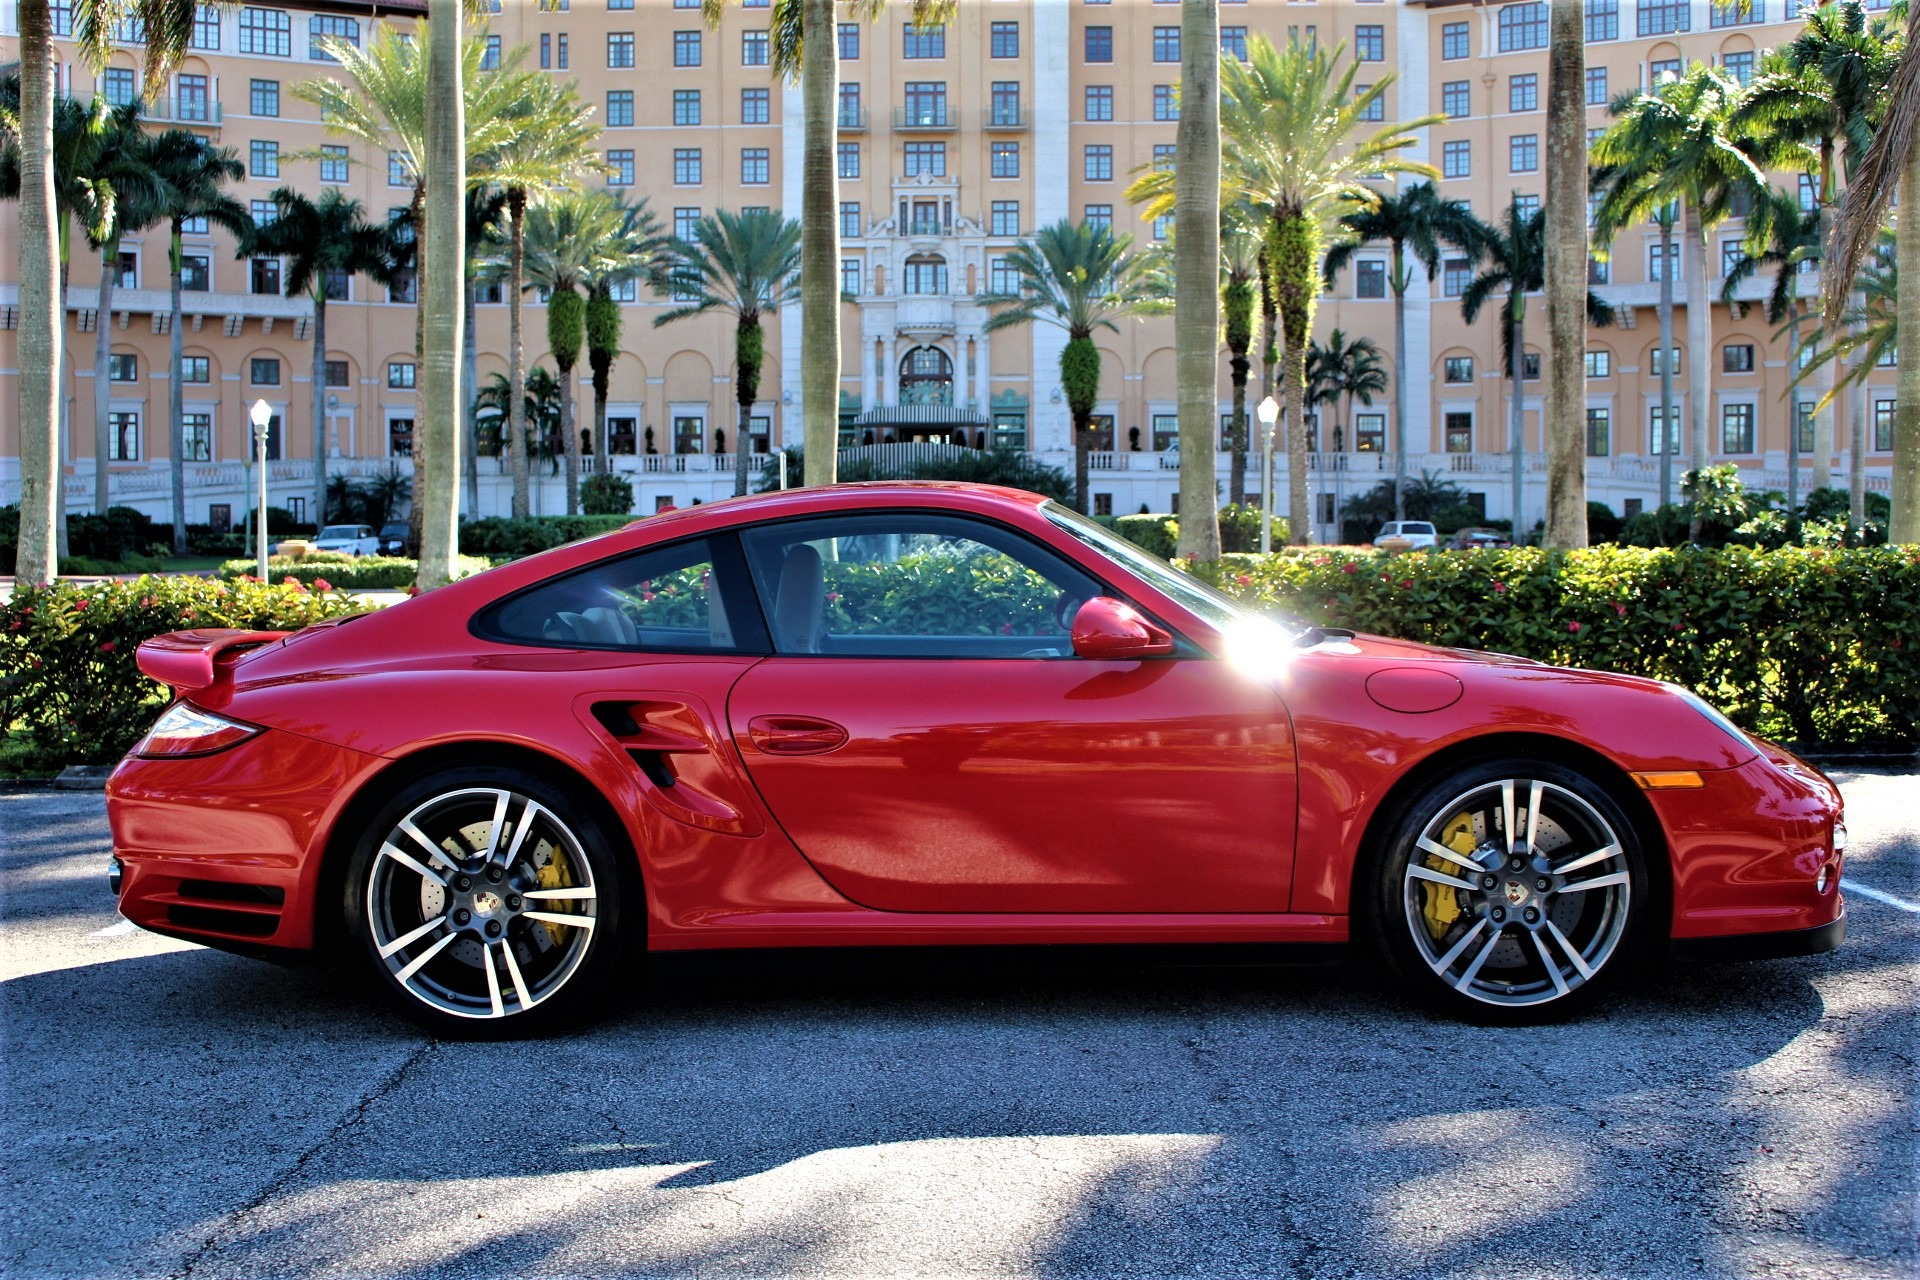 Used 2012 Porsche 911 Turbo for sale $94,850 at The Gables Sports Cars in Miami FL 33146 2